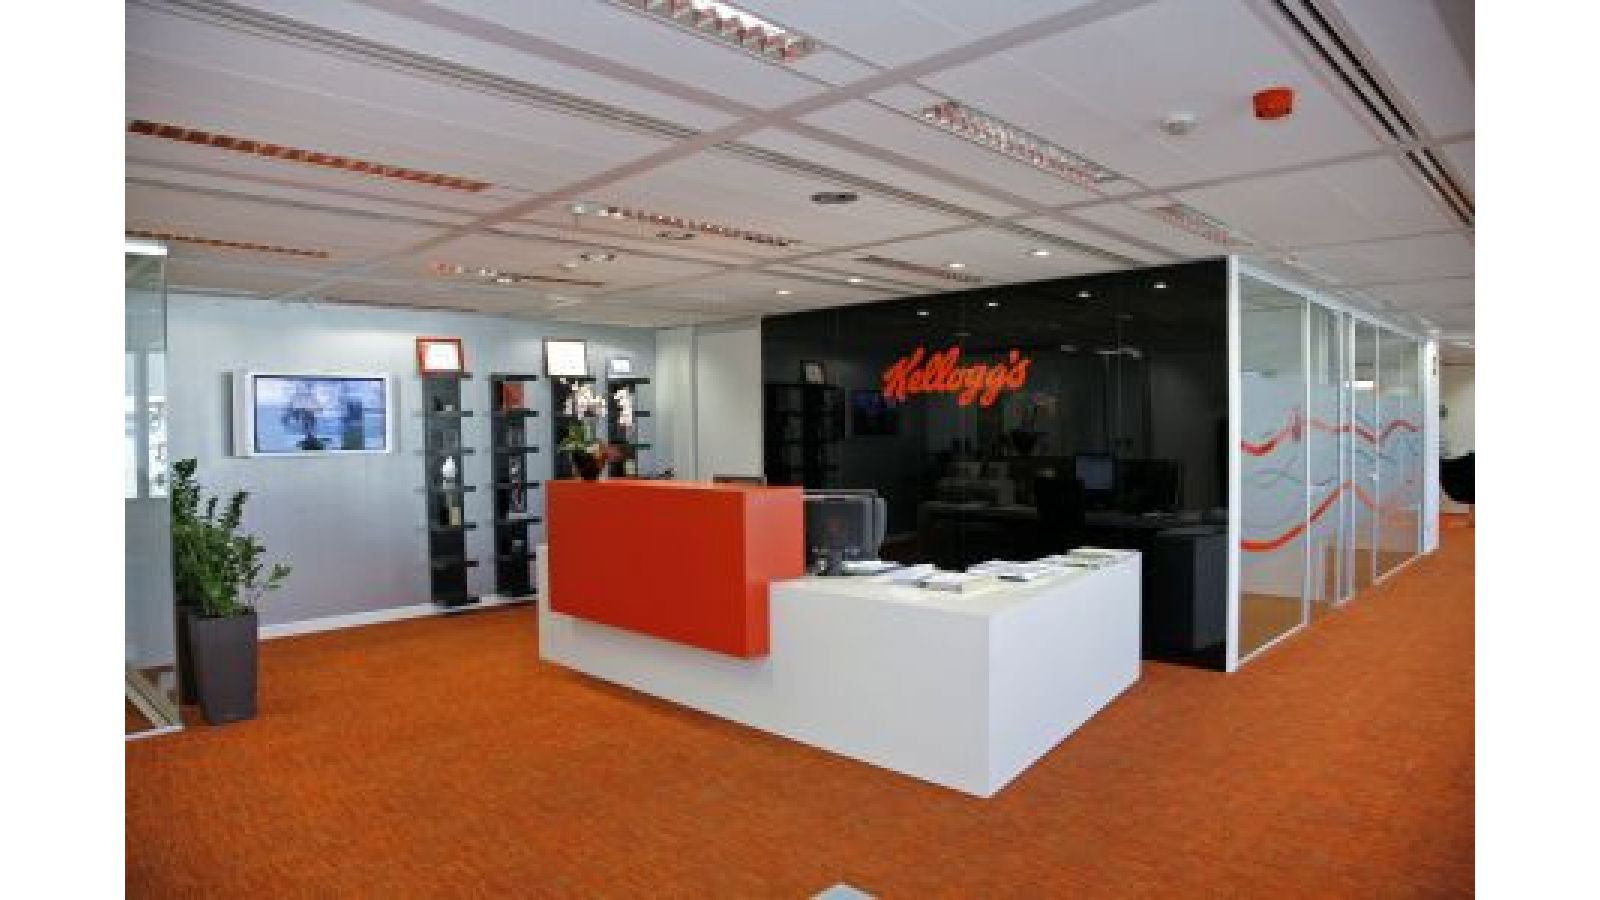 The Kellogg Spain Project seen by 3g office